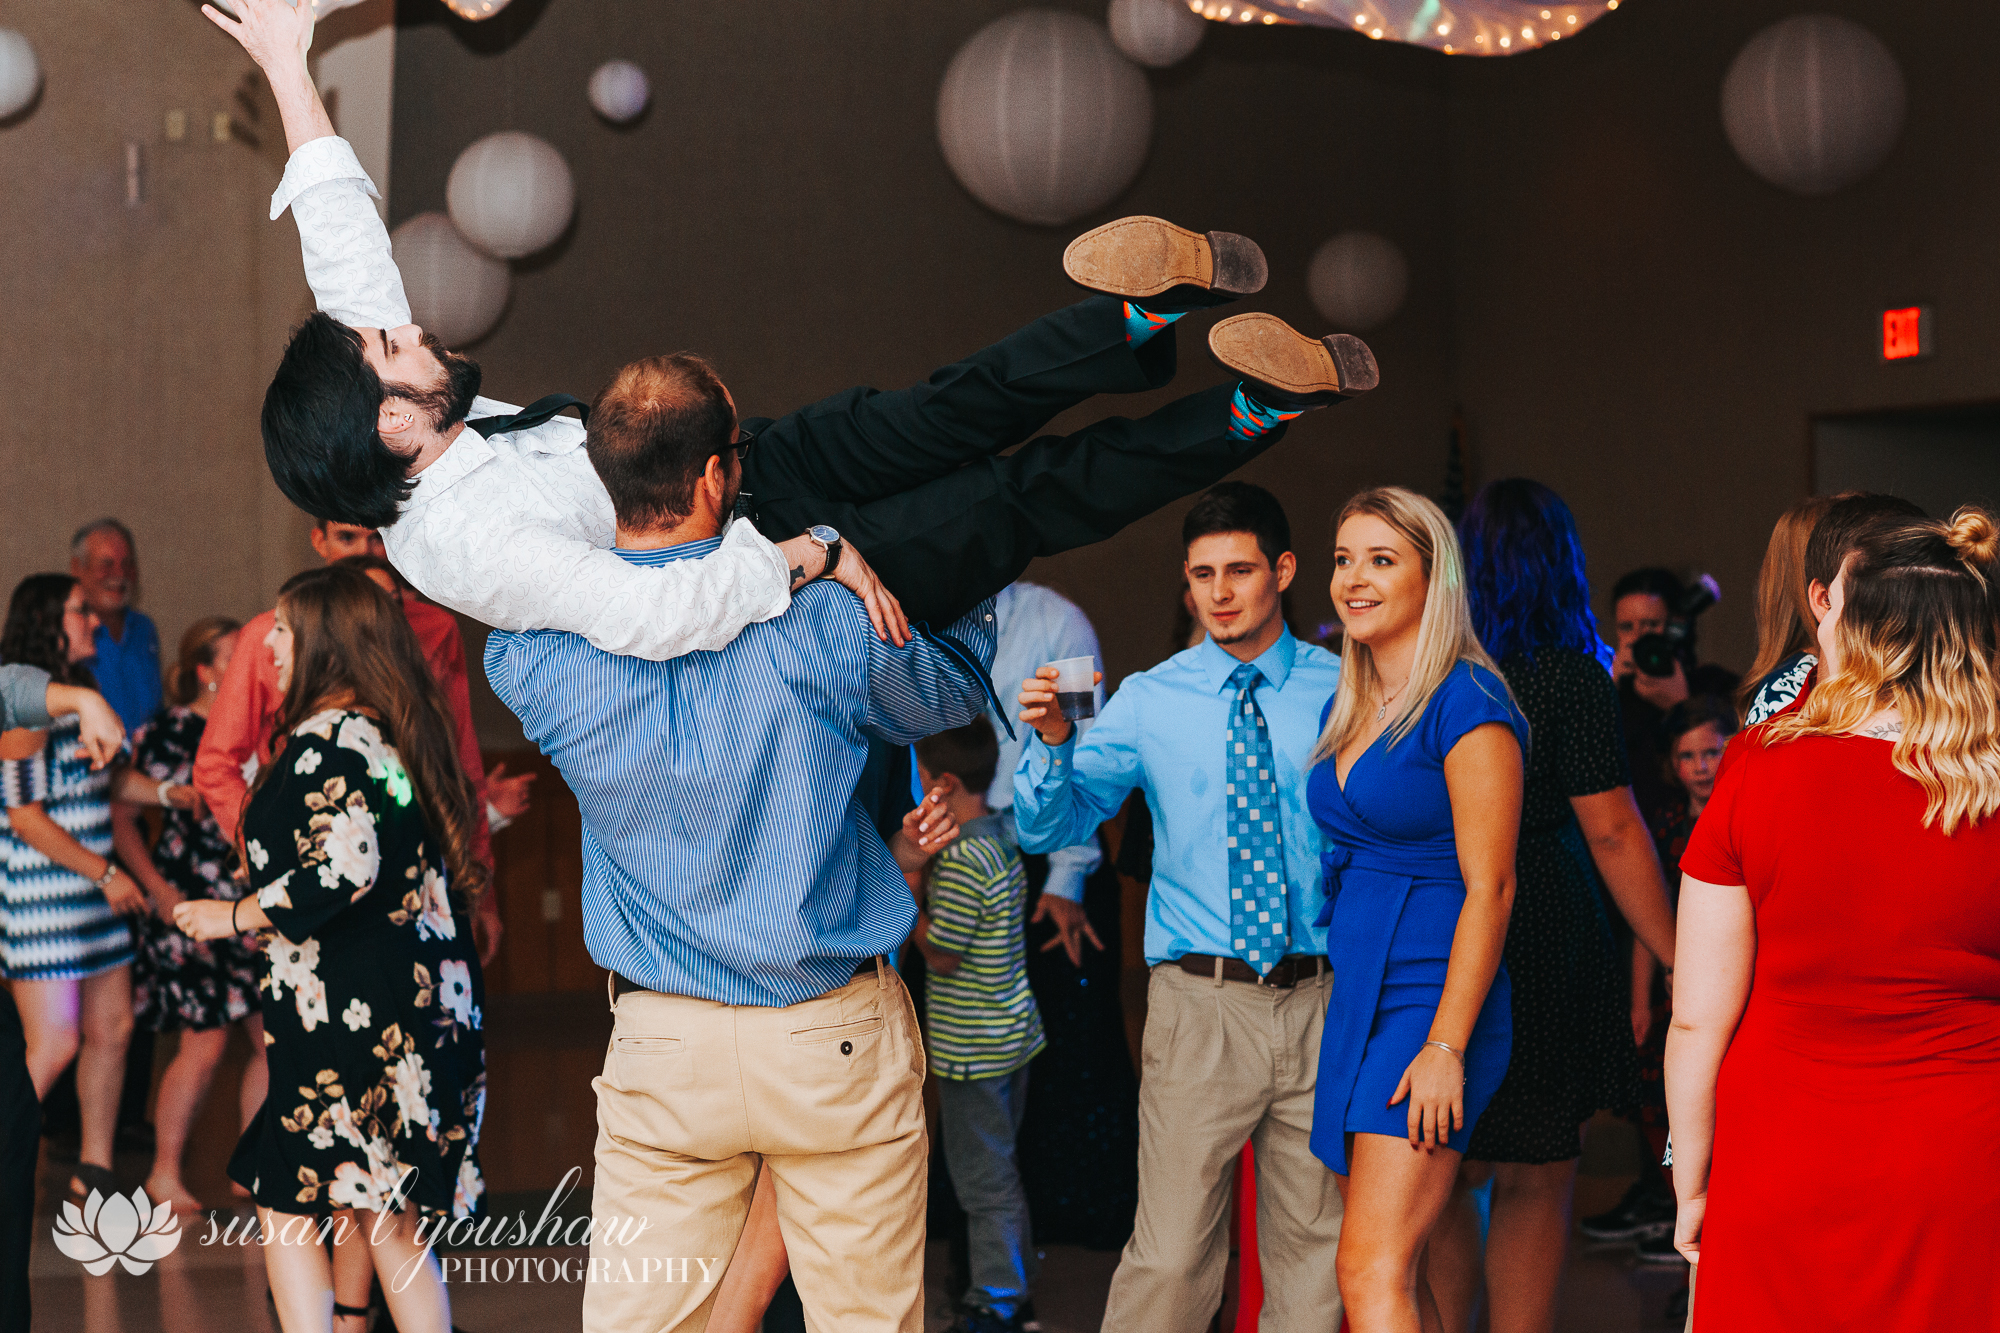 BLOG Kylie and corey Bennet 10-13-2018 SLY Photography LLC-190.jpg